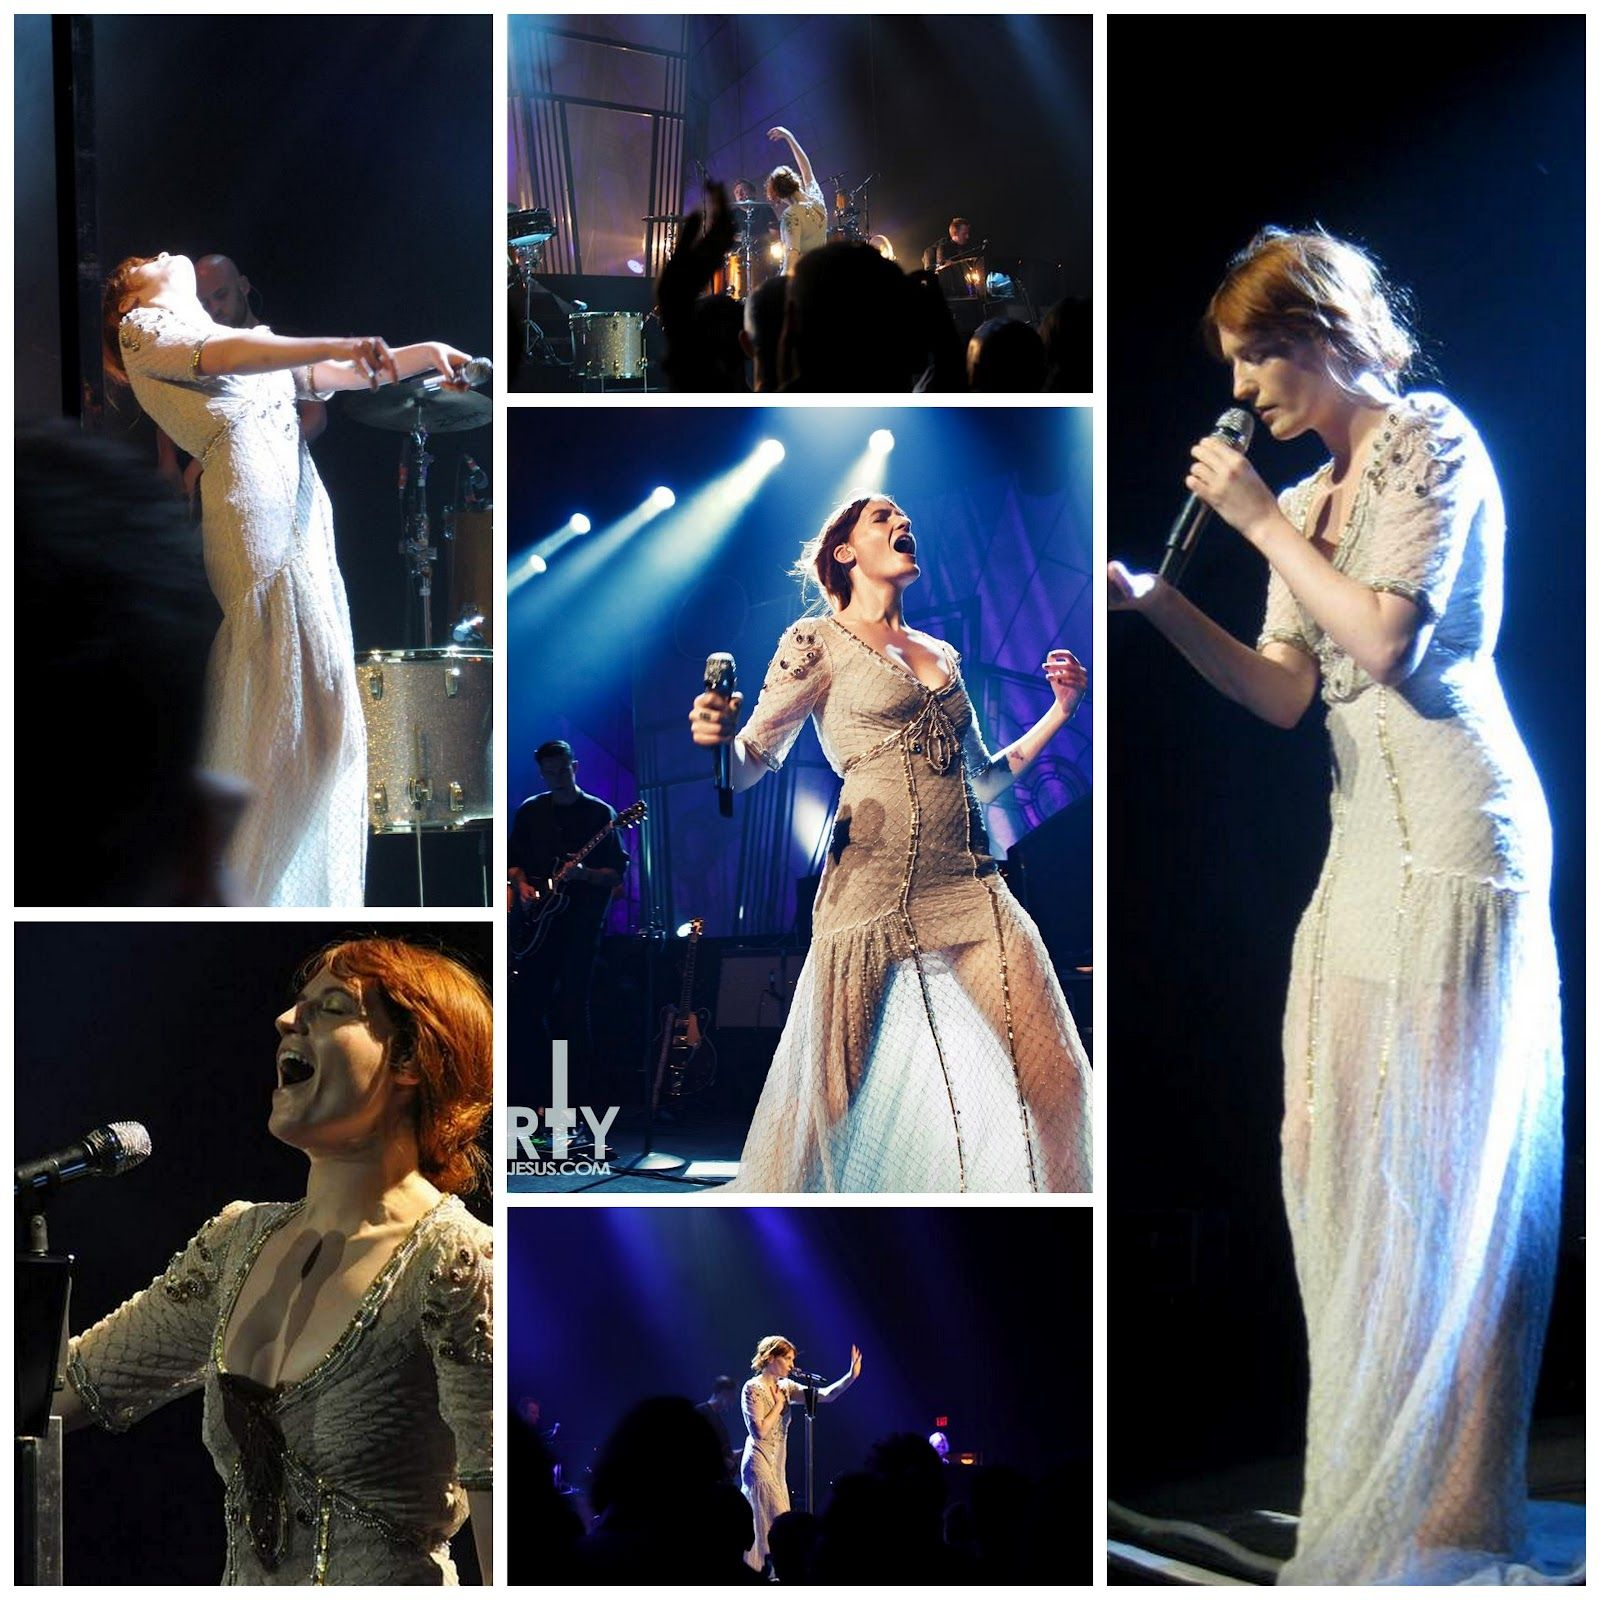 #flostyle #florencewelch #florenceandthemachine